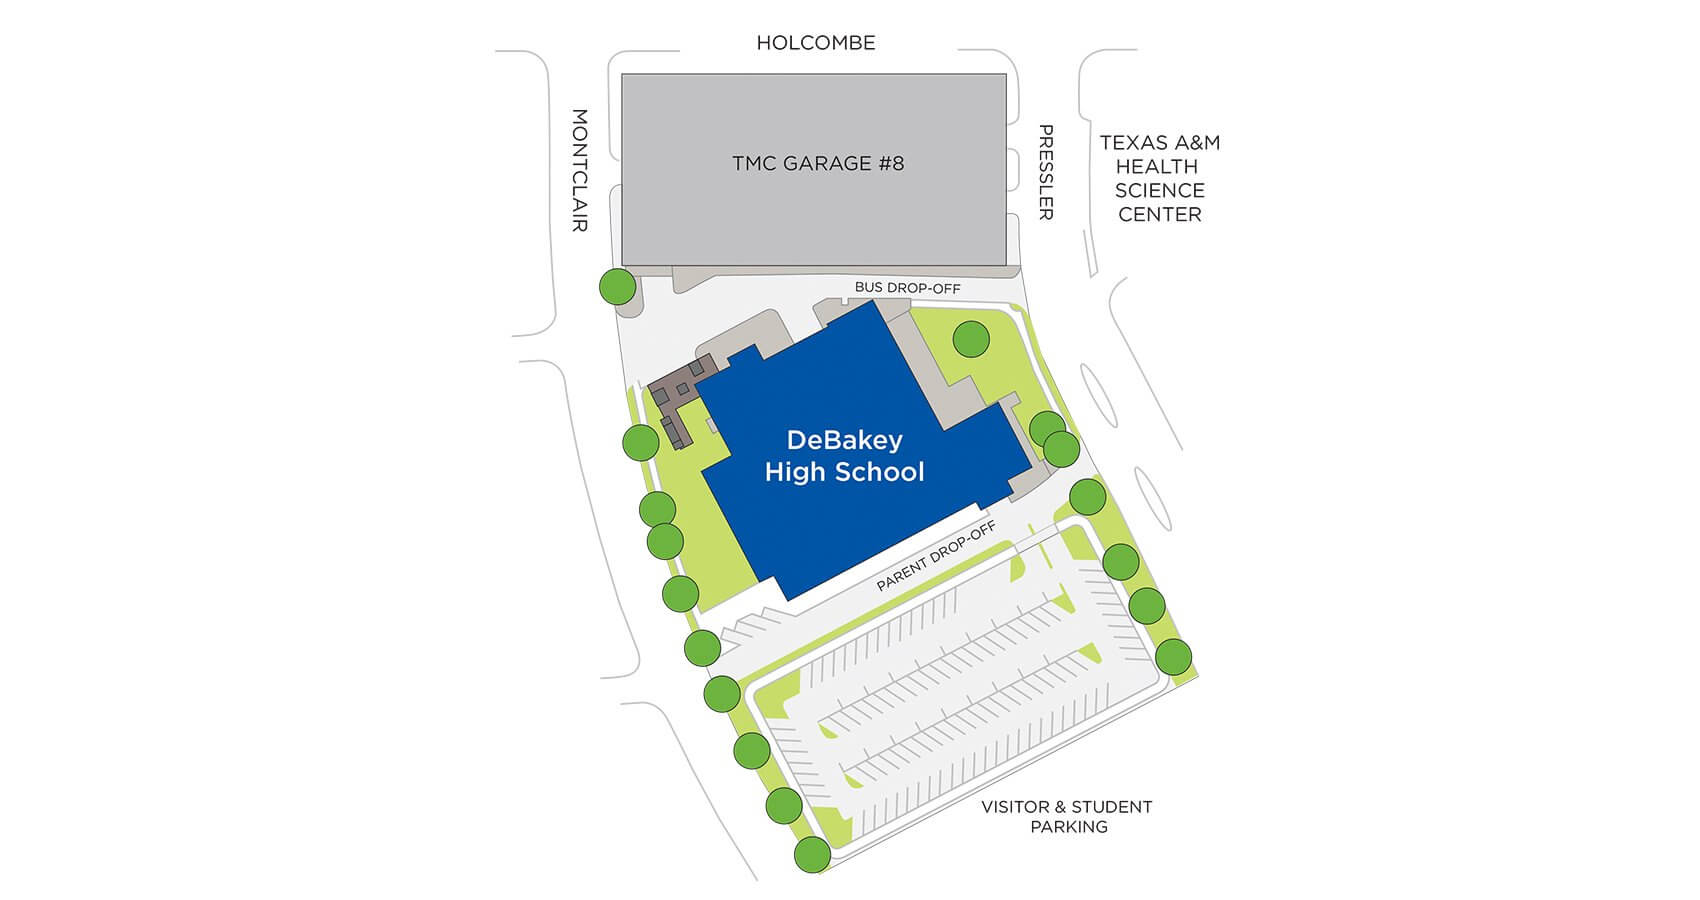 DeBakey High School's new location is in the heart of the medical center.